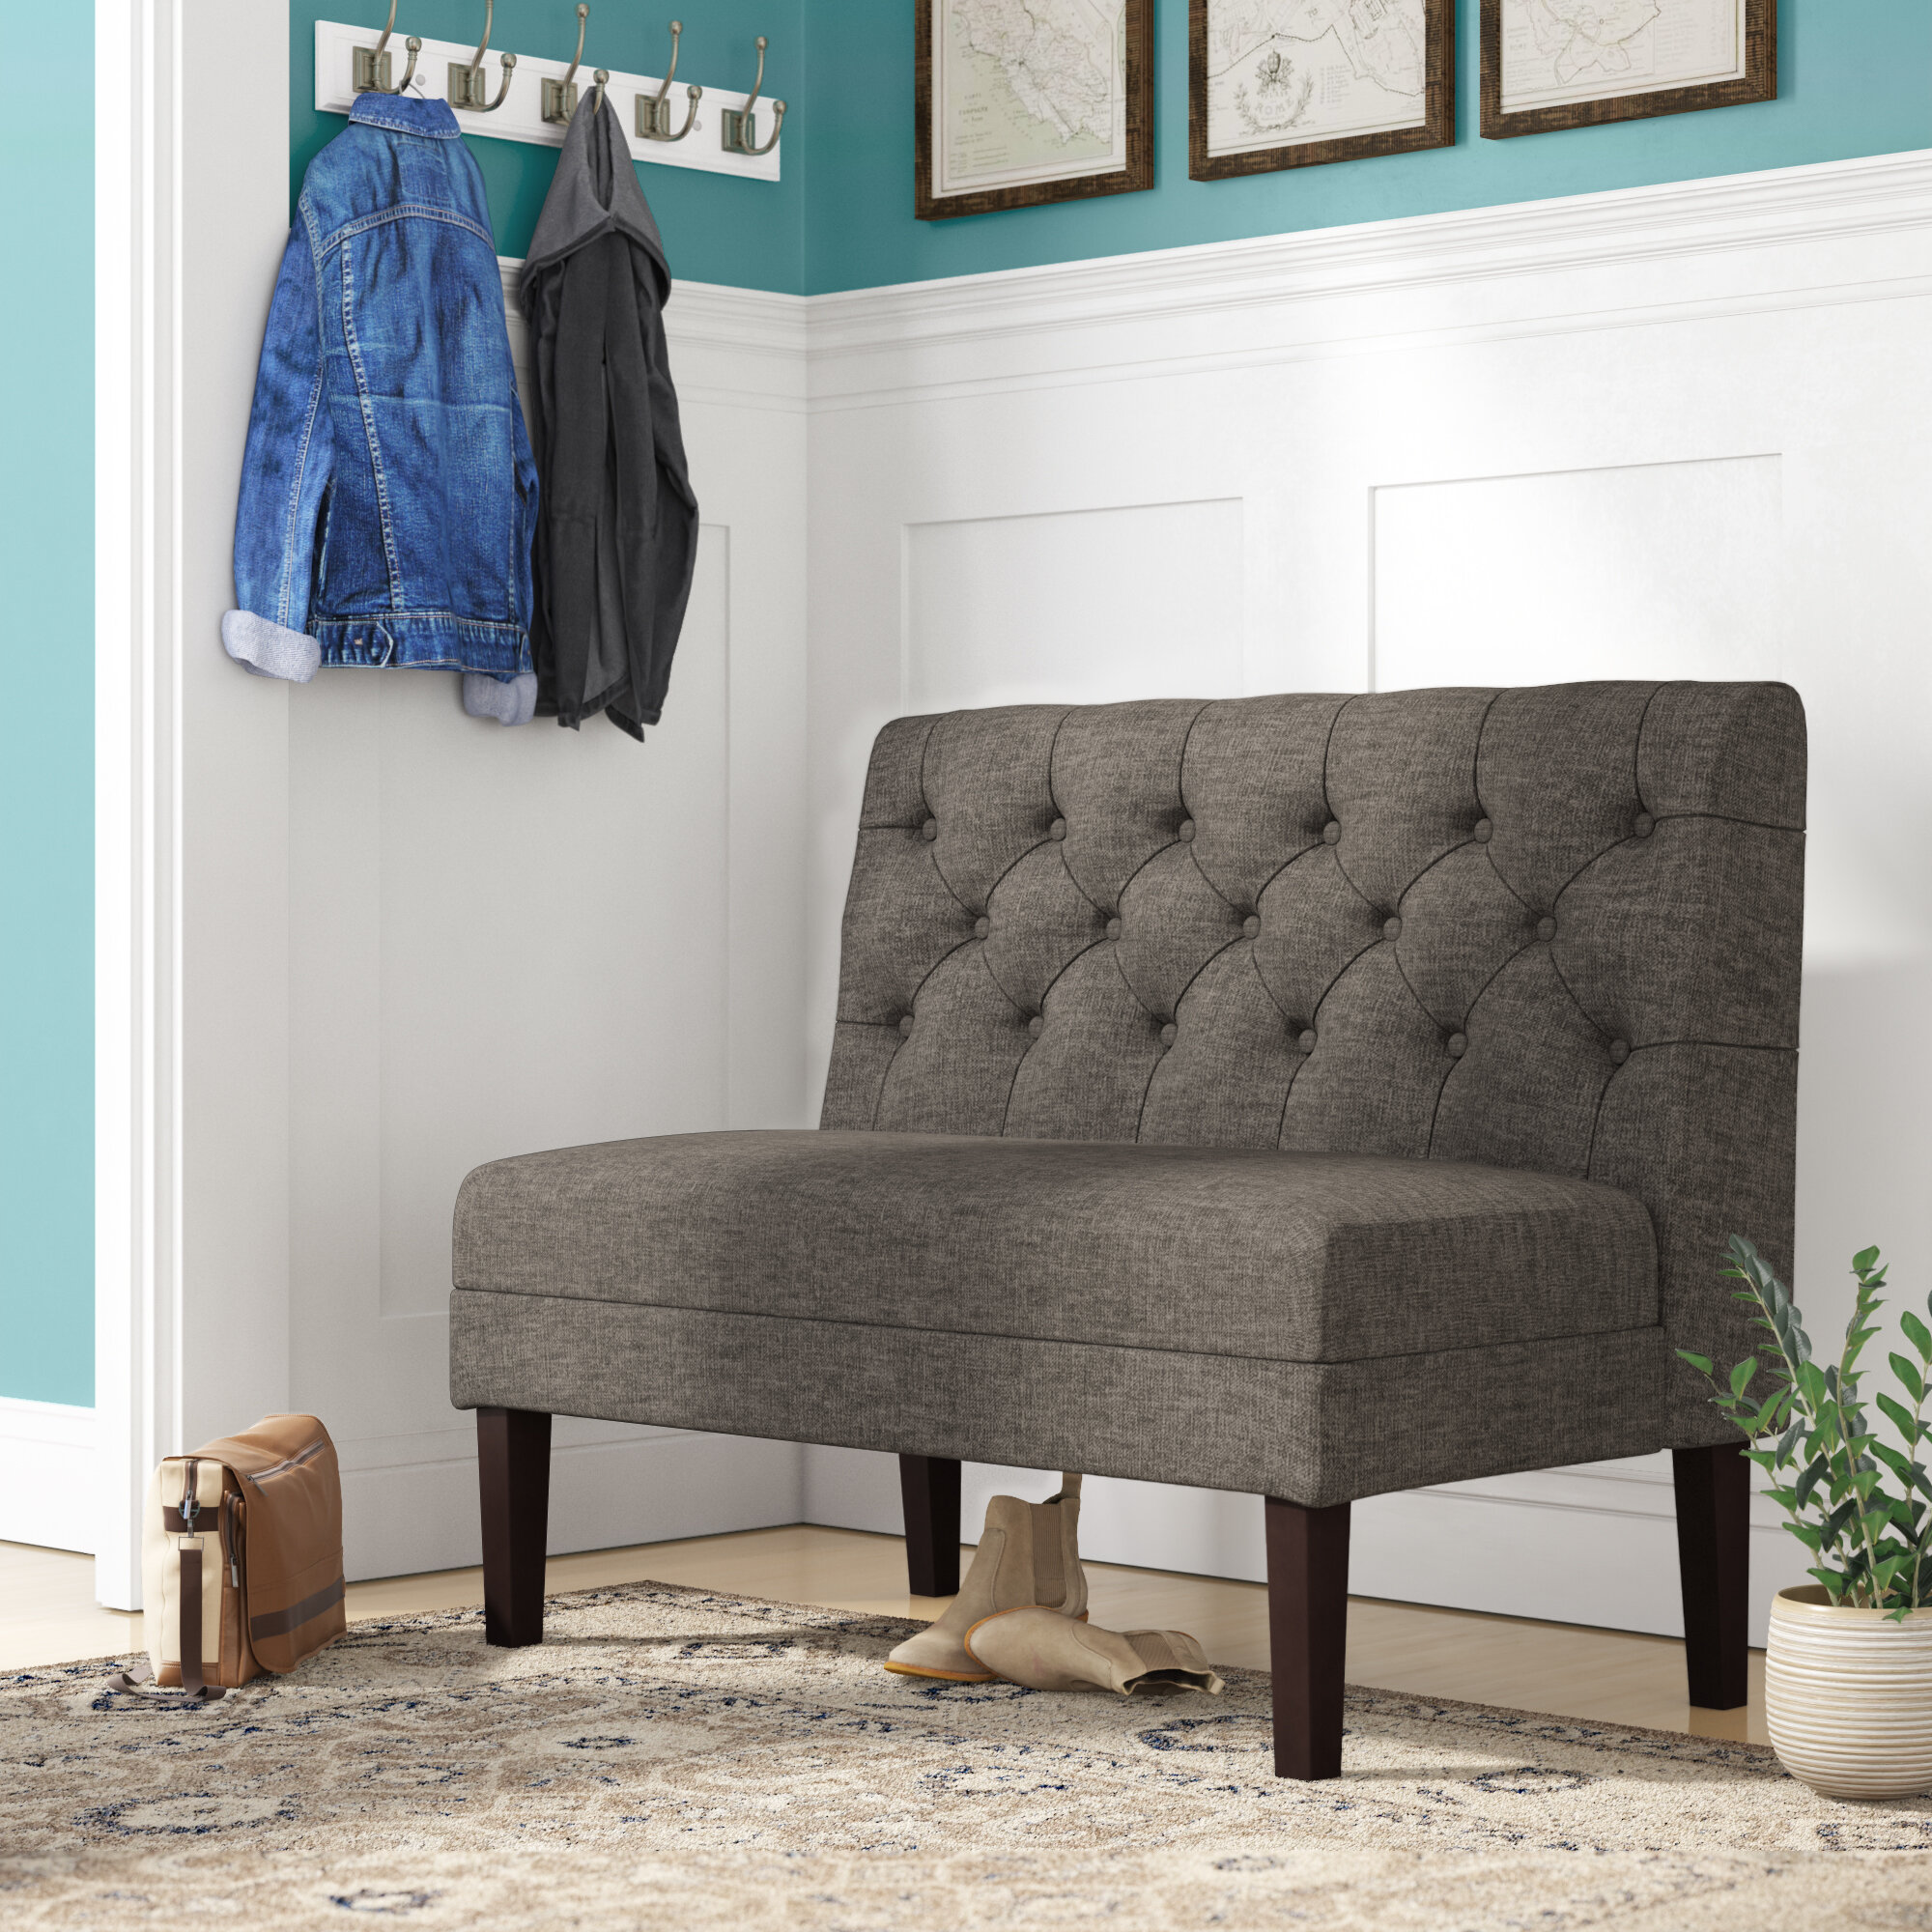 Picture of: Darby Home Co Urbana Upholstered Bench Reviews Wayfair Ca